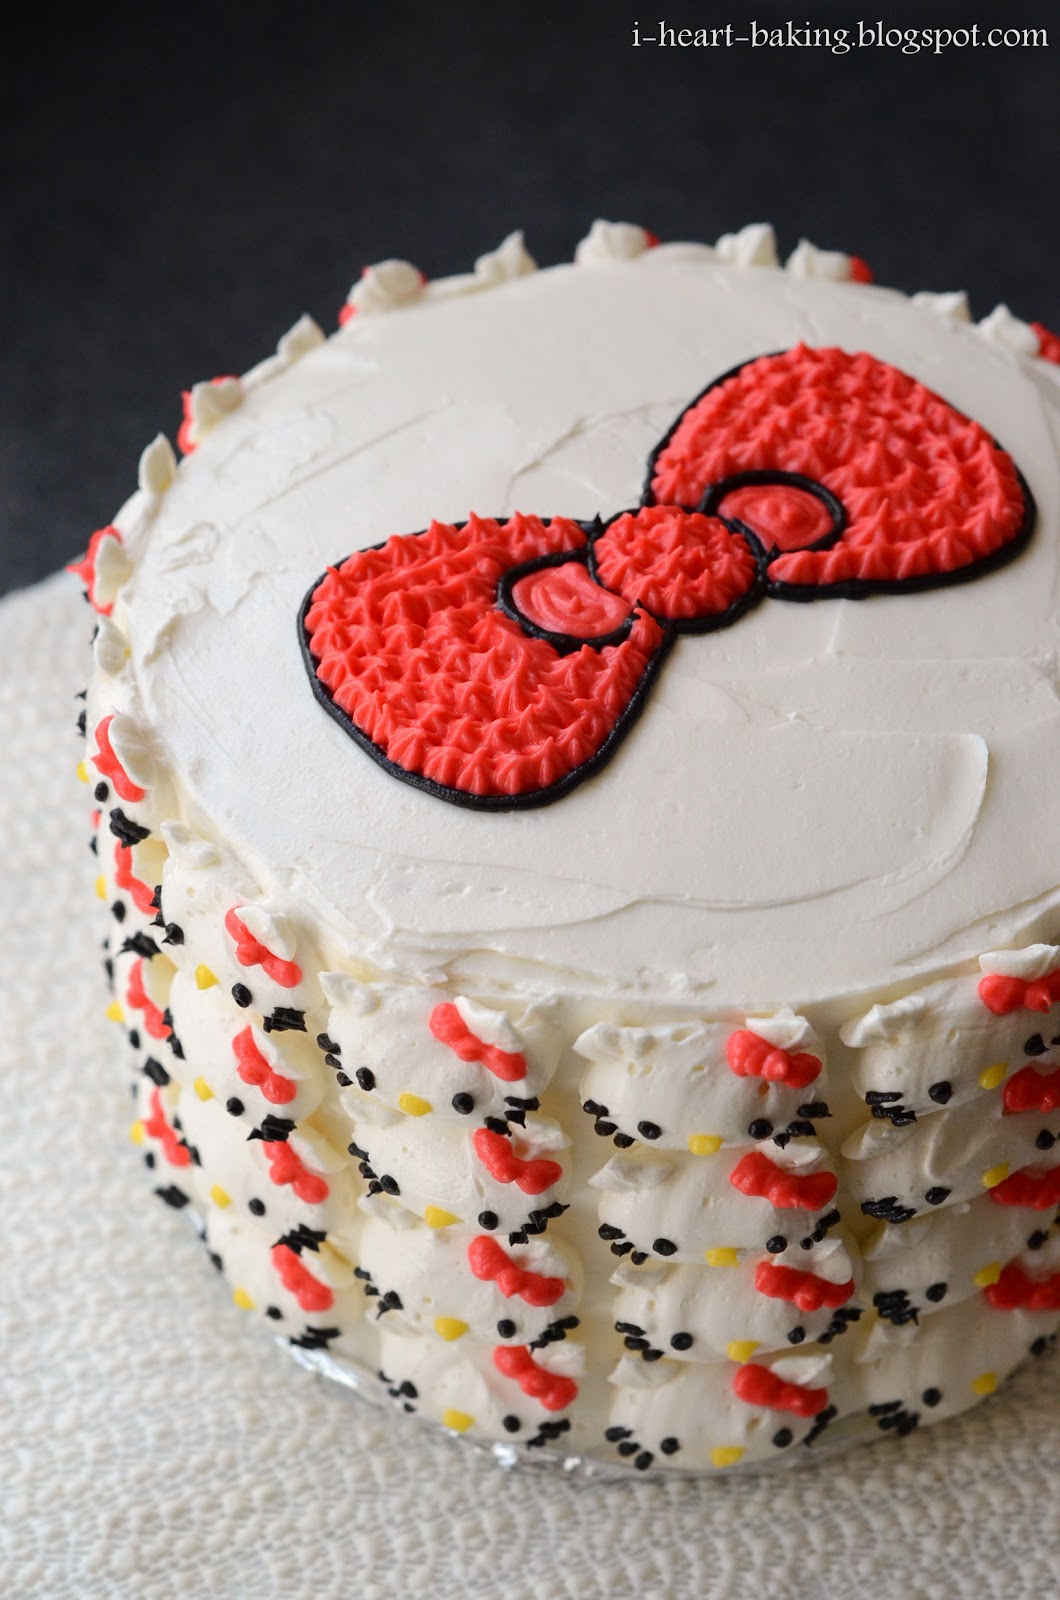 Hello kitty cake pink ombre cake with whipped chocolate ganache and